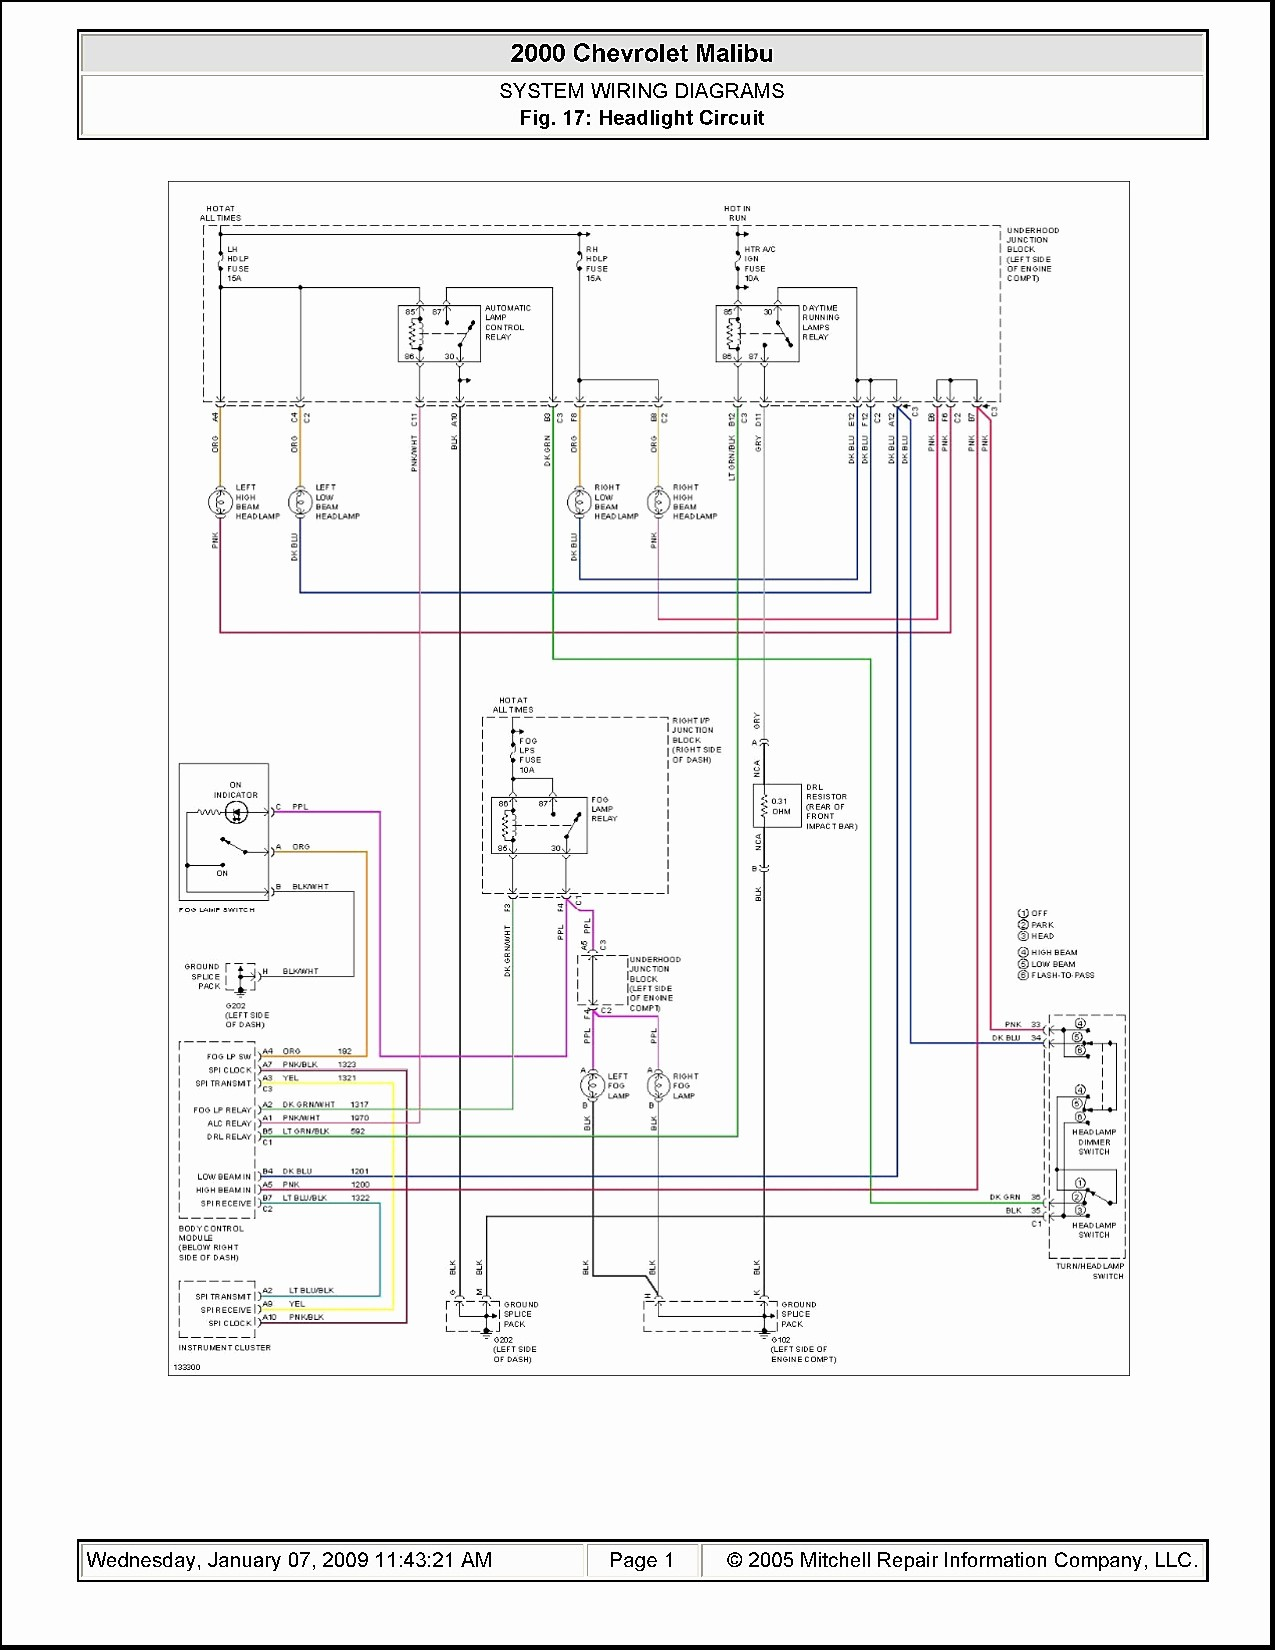 2004 Hyundai Santa Fe Car Stereo Radio Wiring Diagram Solutions 2001 Schematic 2005 Free Picture